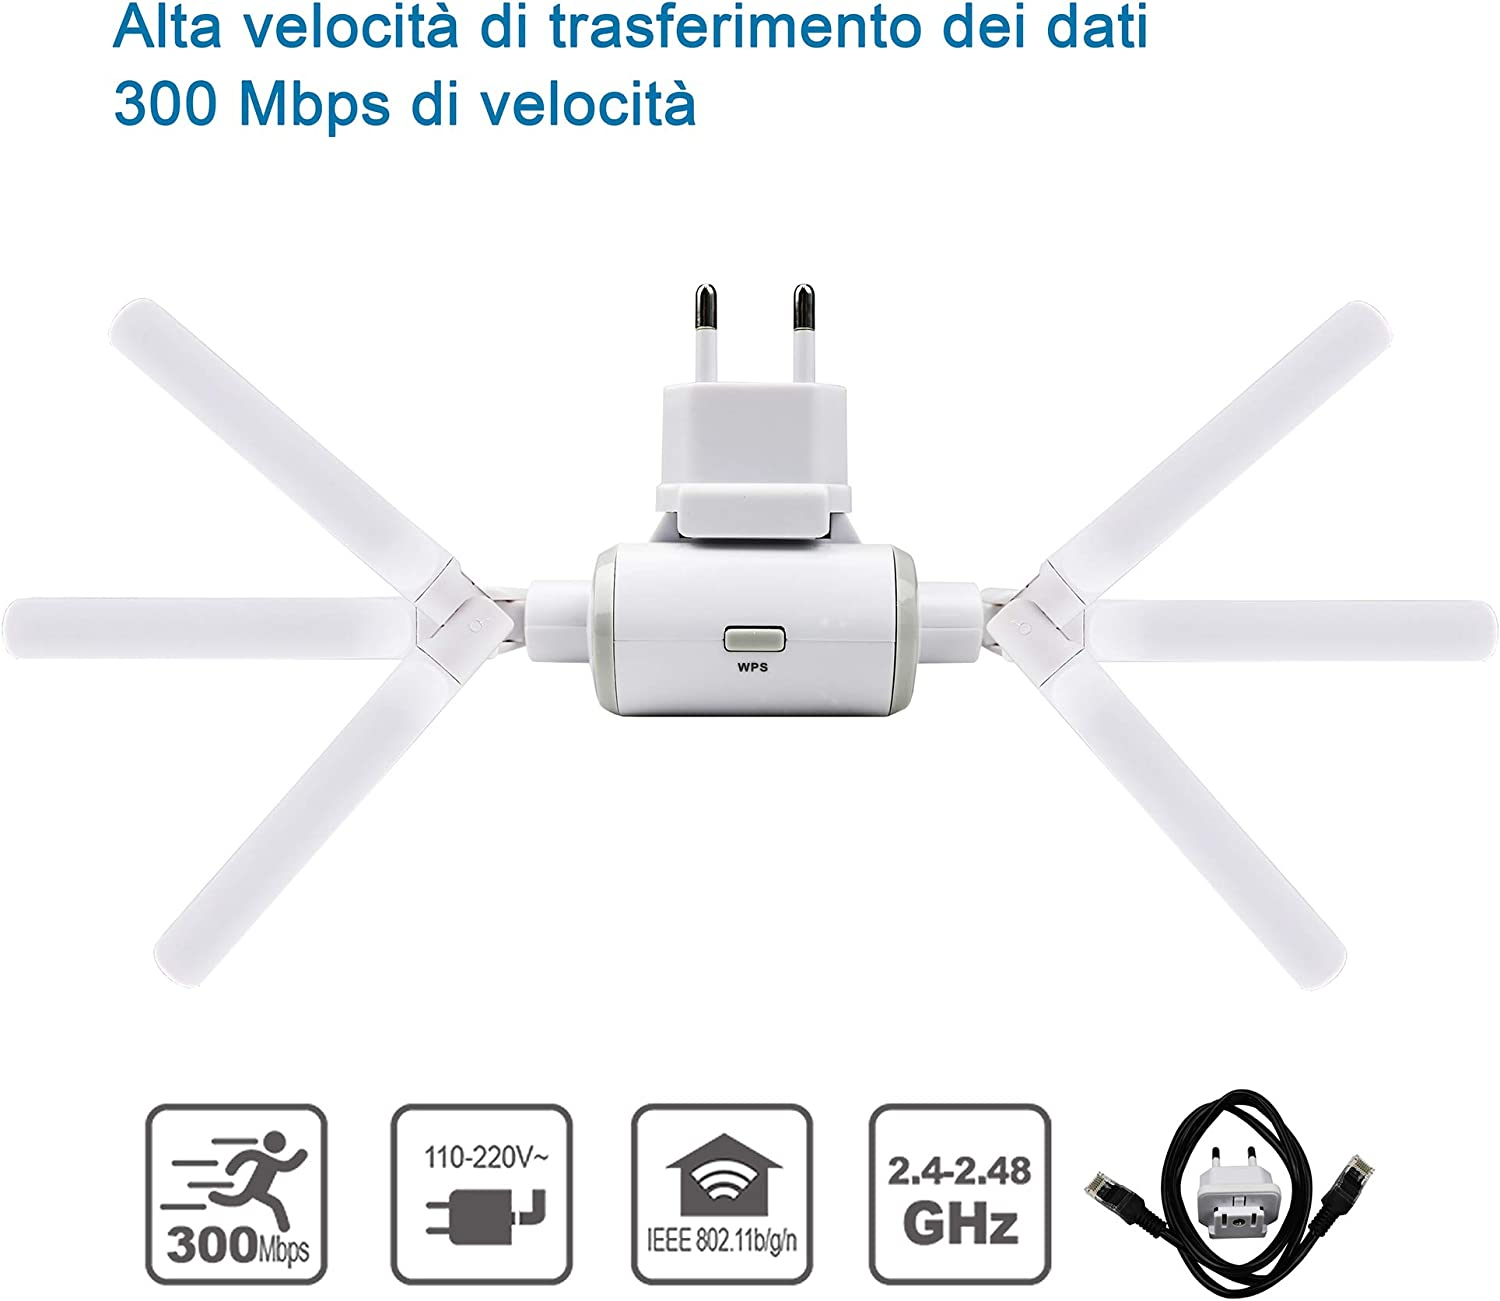 WiFi Extender N300 Range Extender WiFi Access Point AP Compatibile con Tutti i Modem Router WiFi. 300Mbps 2.4GHz EXTRASTAR Ripetitore WiFi Wireless